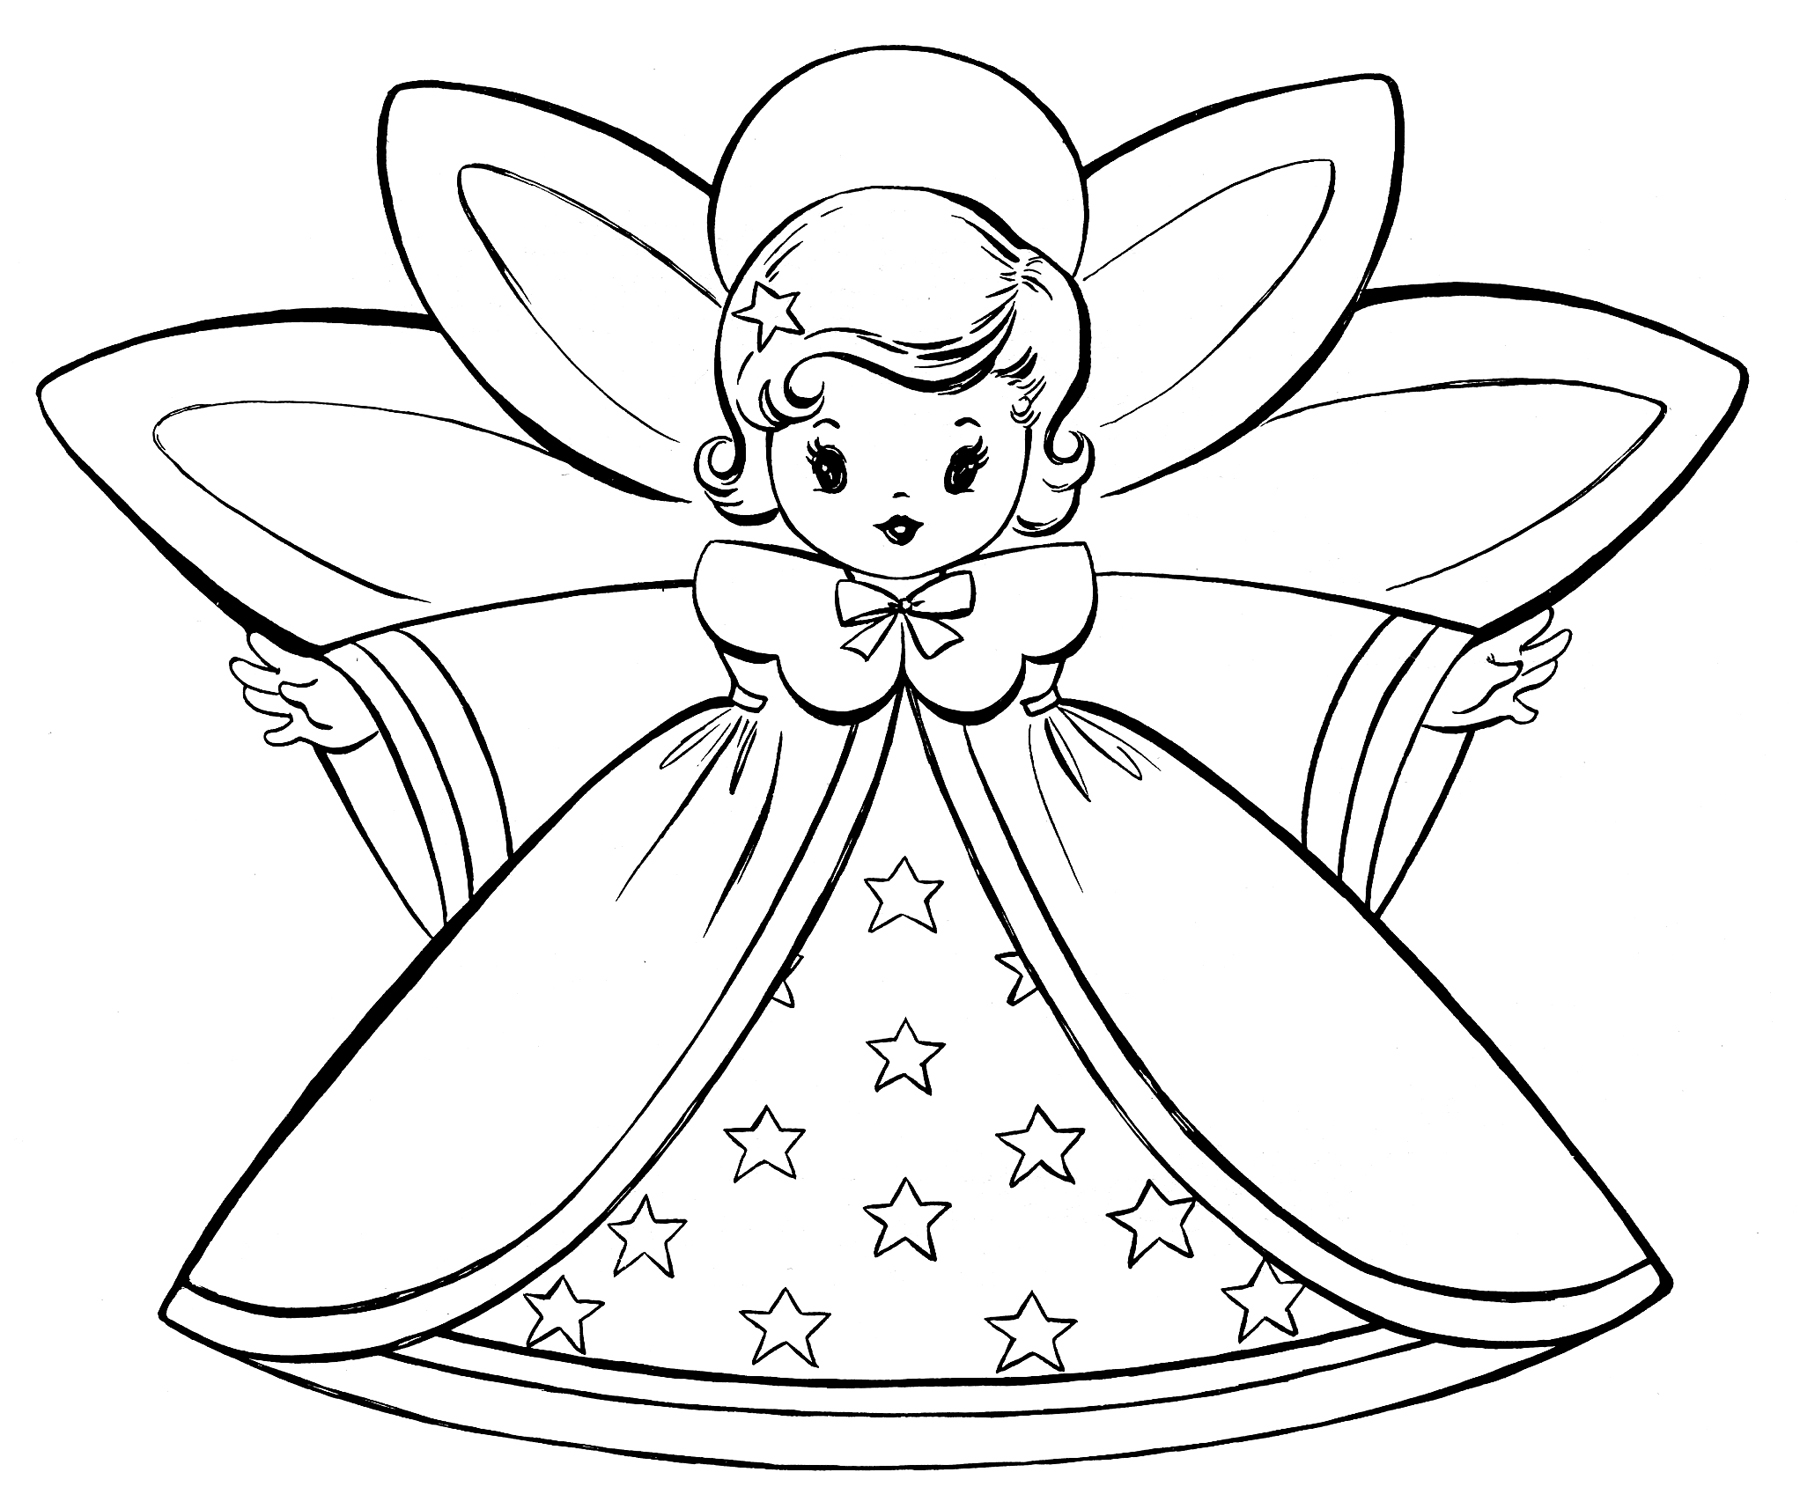 Christmas Coloring Pages For 10 Year Olds With Free Retro Angels The Graphics Fairy